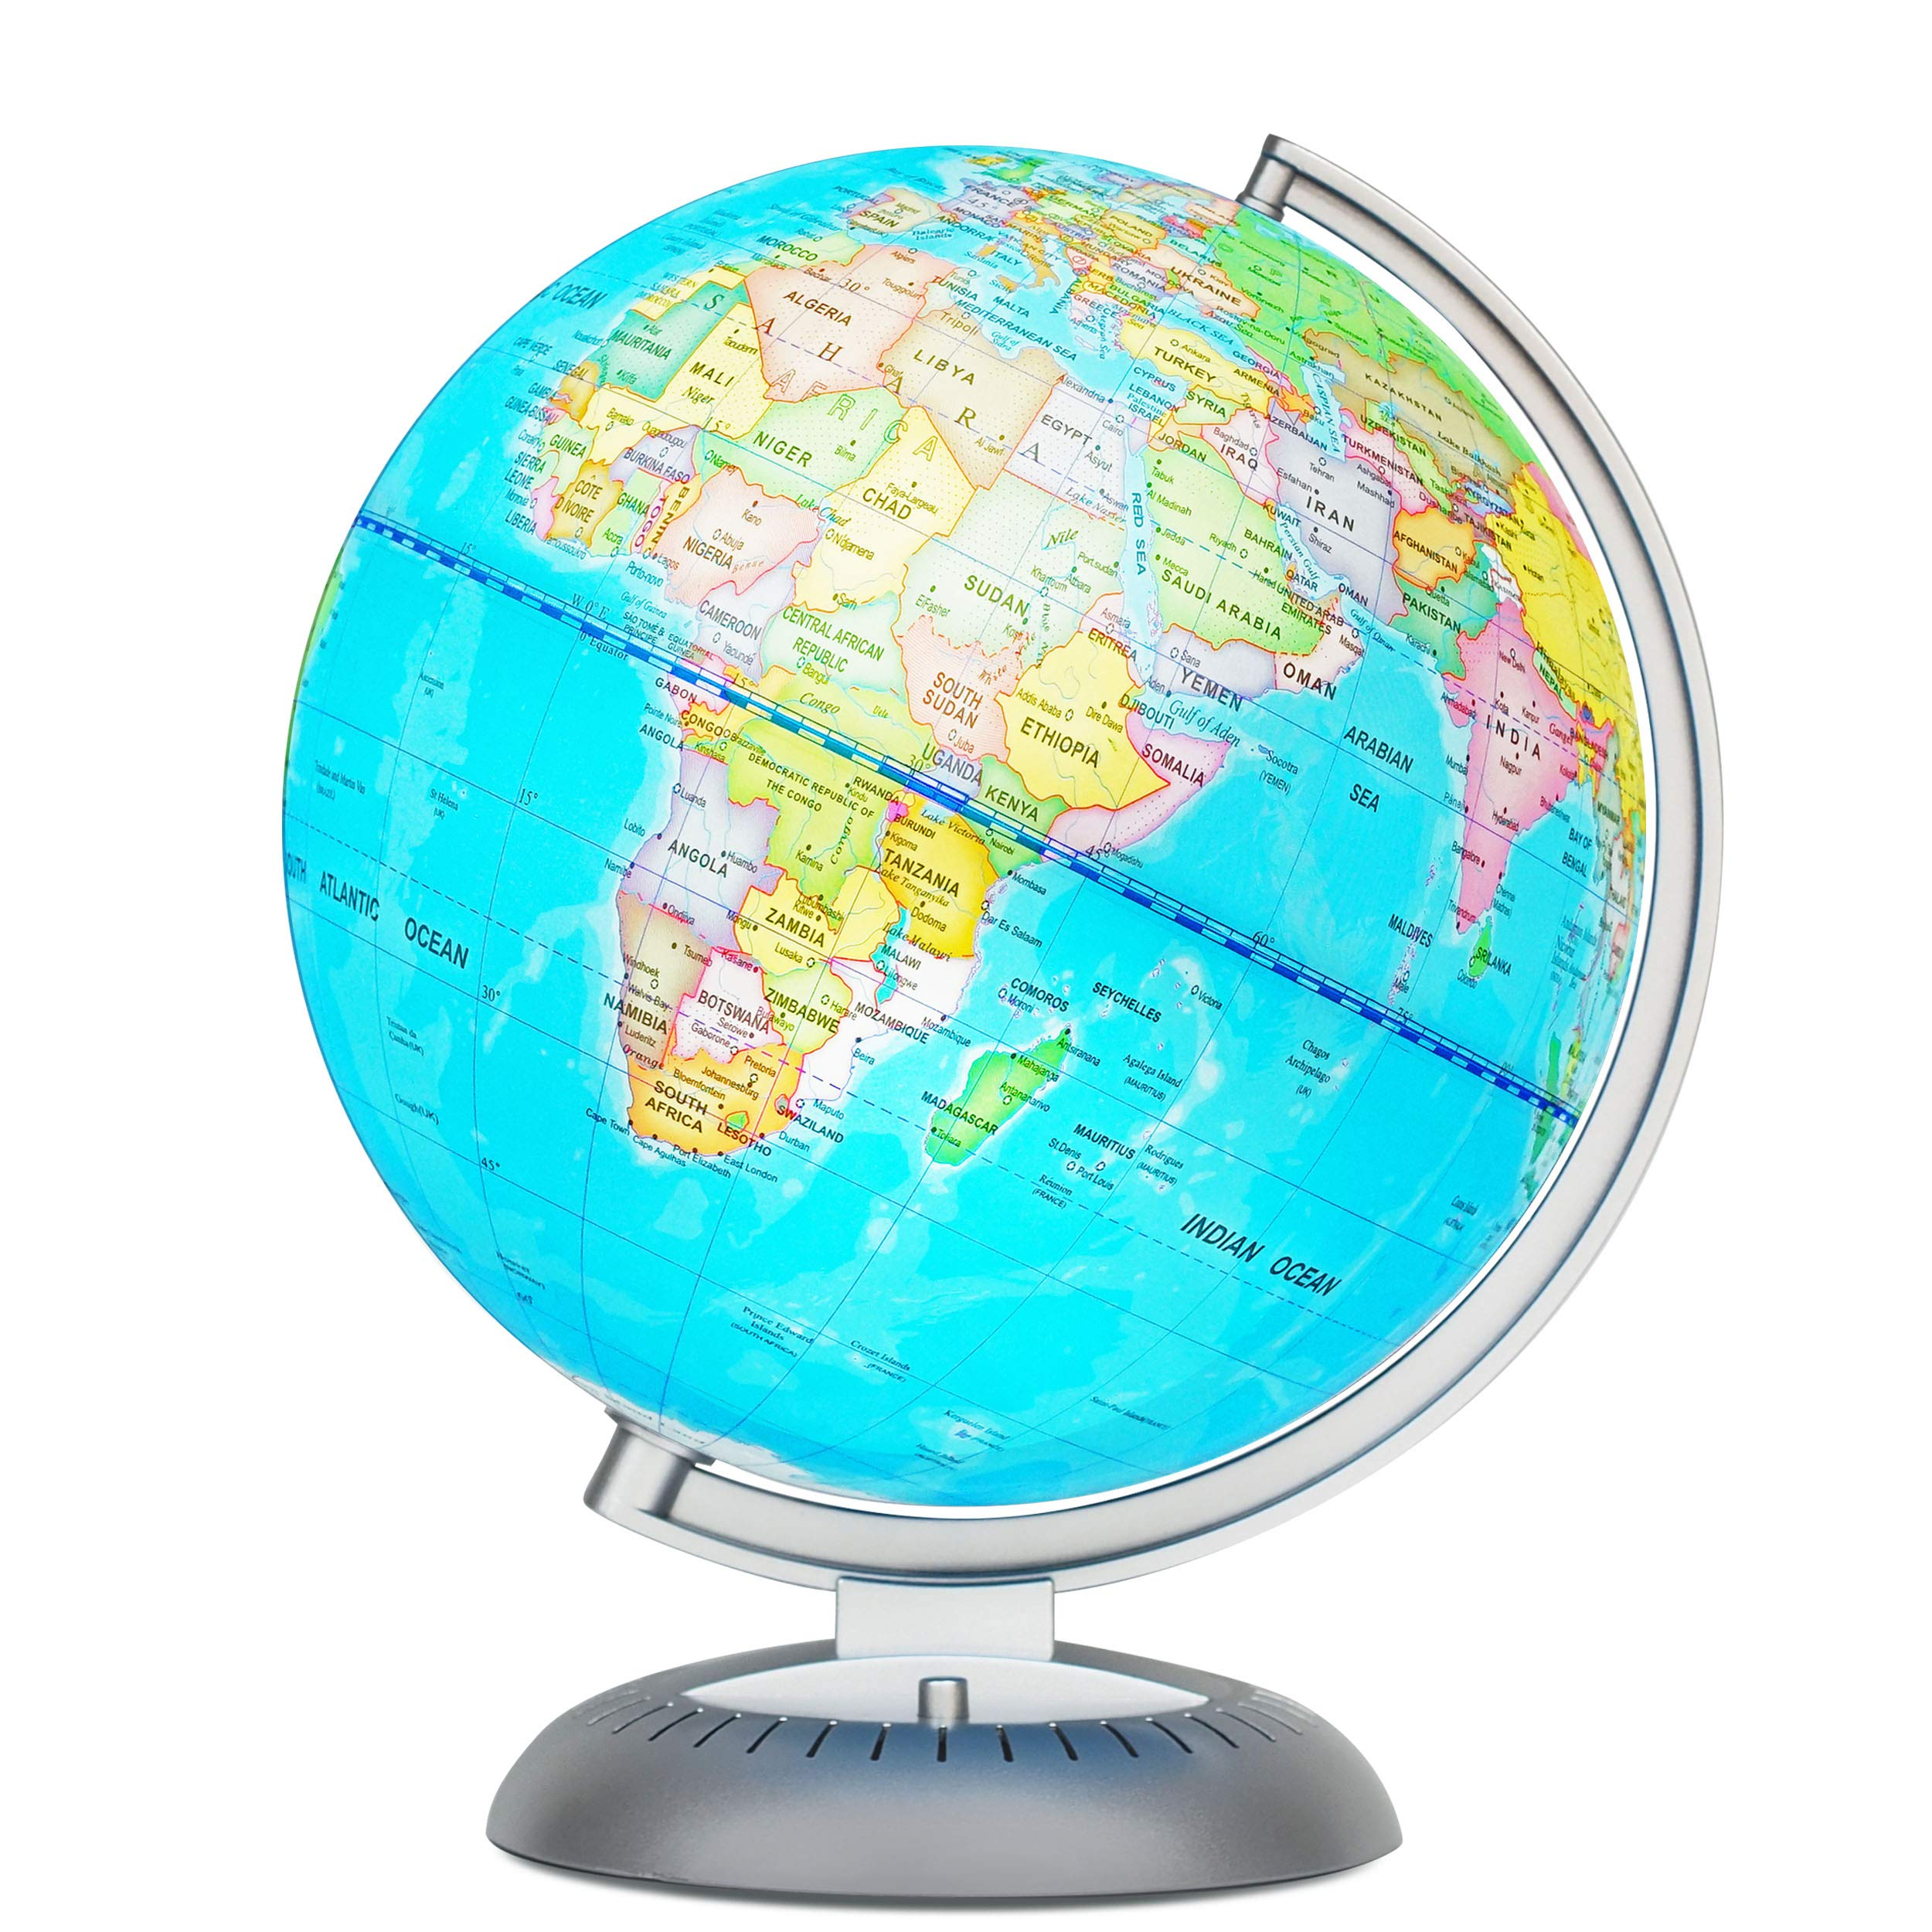 Illuminated World Globe for Kids with Stand – Built-in LED Light Illuminates for Night View – Colorful, Easy-Read Labels of Continents, Countries, Capitals & Natural Wonders, 8''